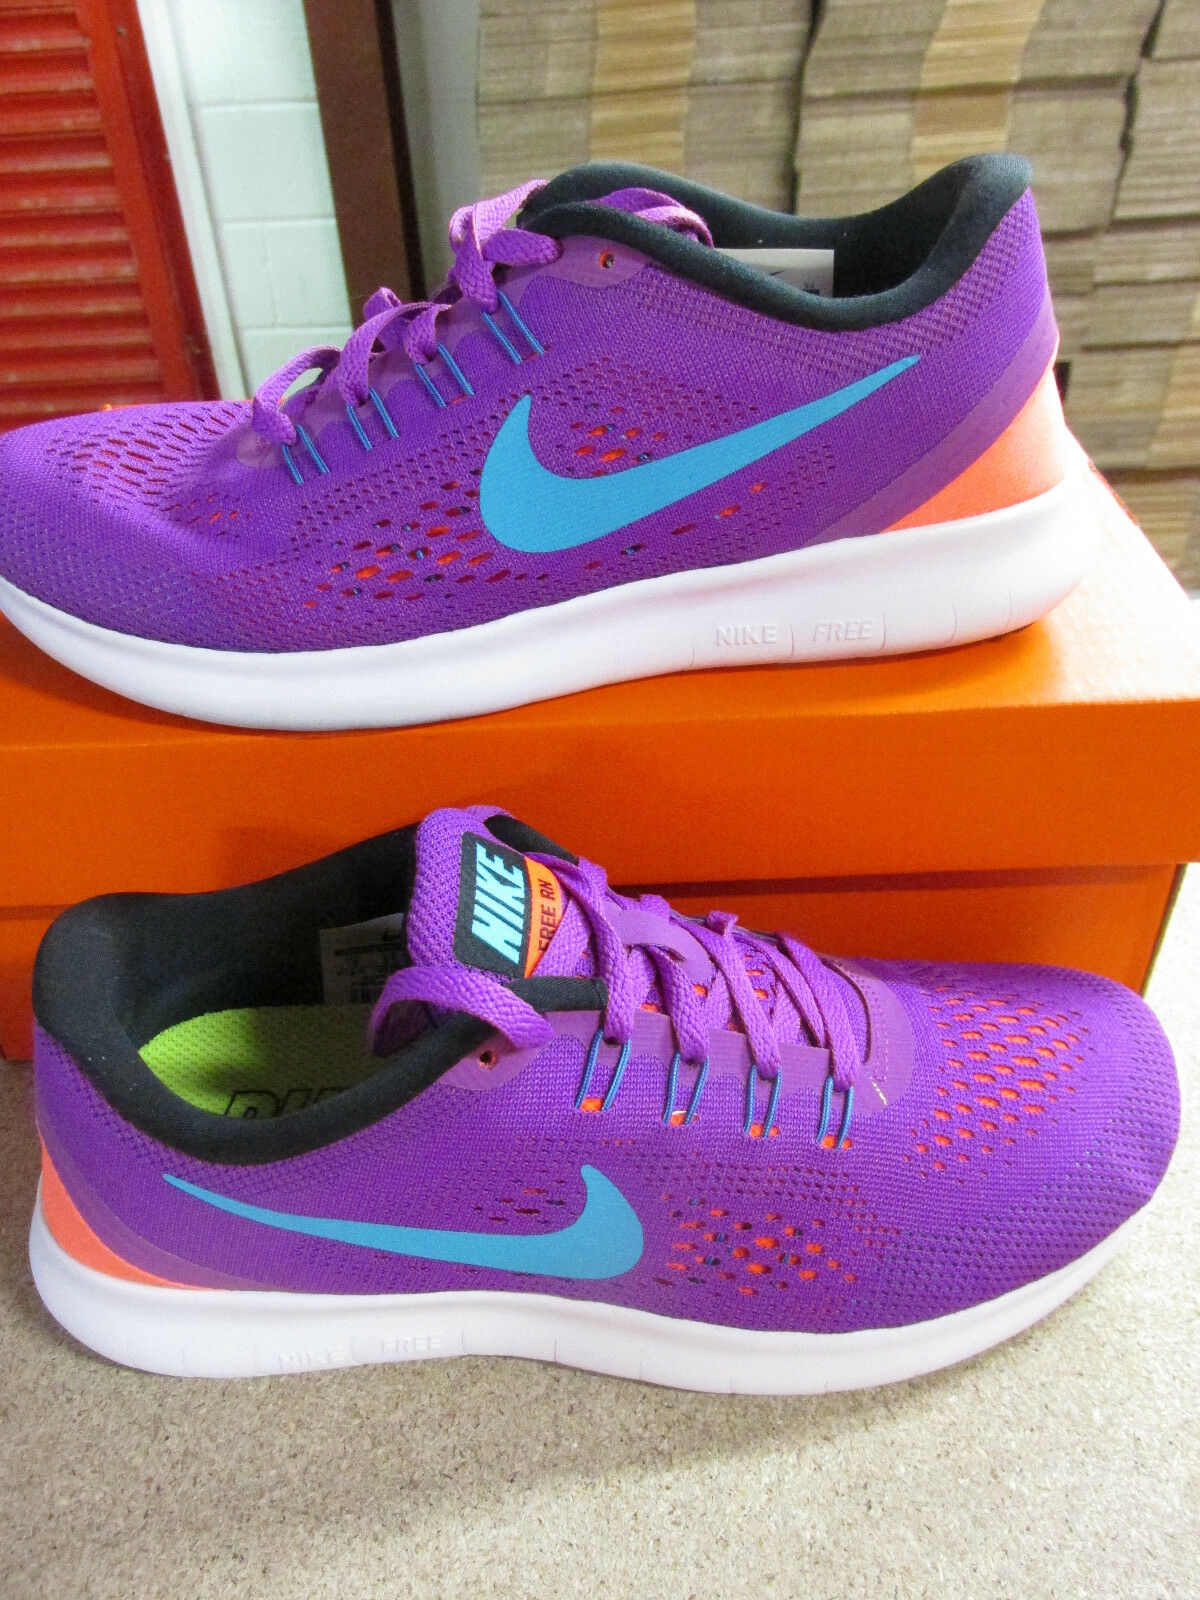 nike RN  Femme  free RN nike fonctionnement trainers 831509 500 Baskets  chaussures a79382